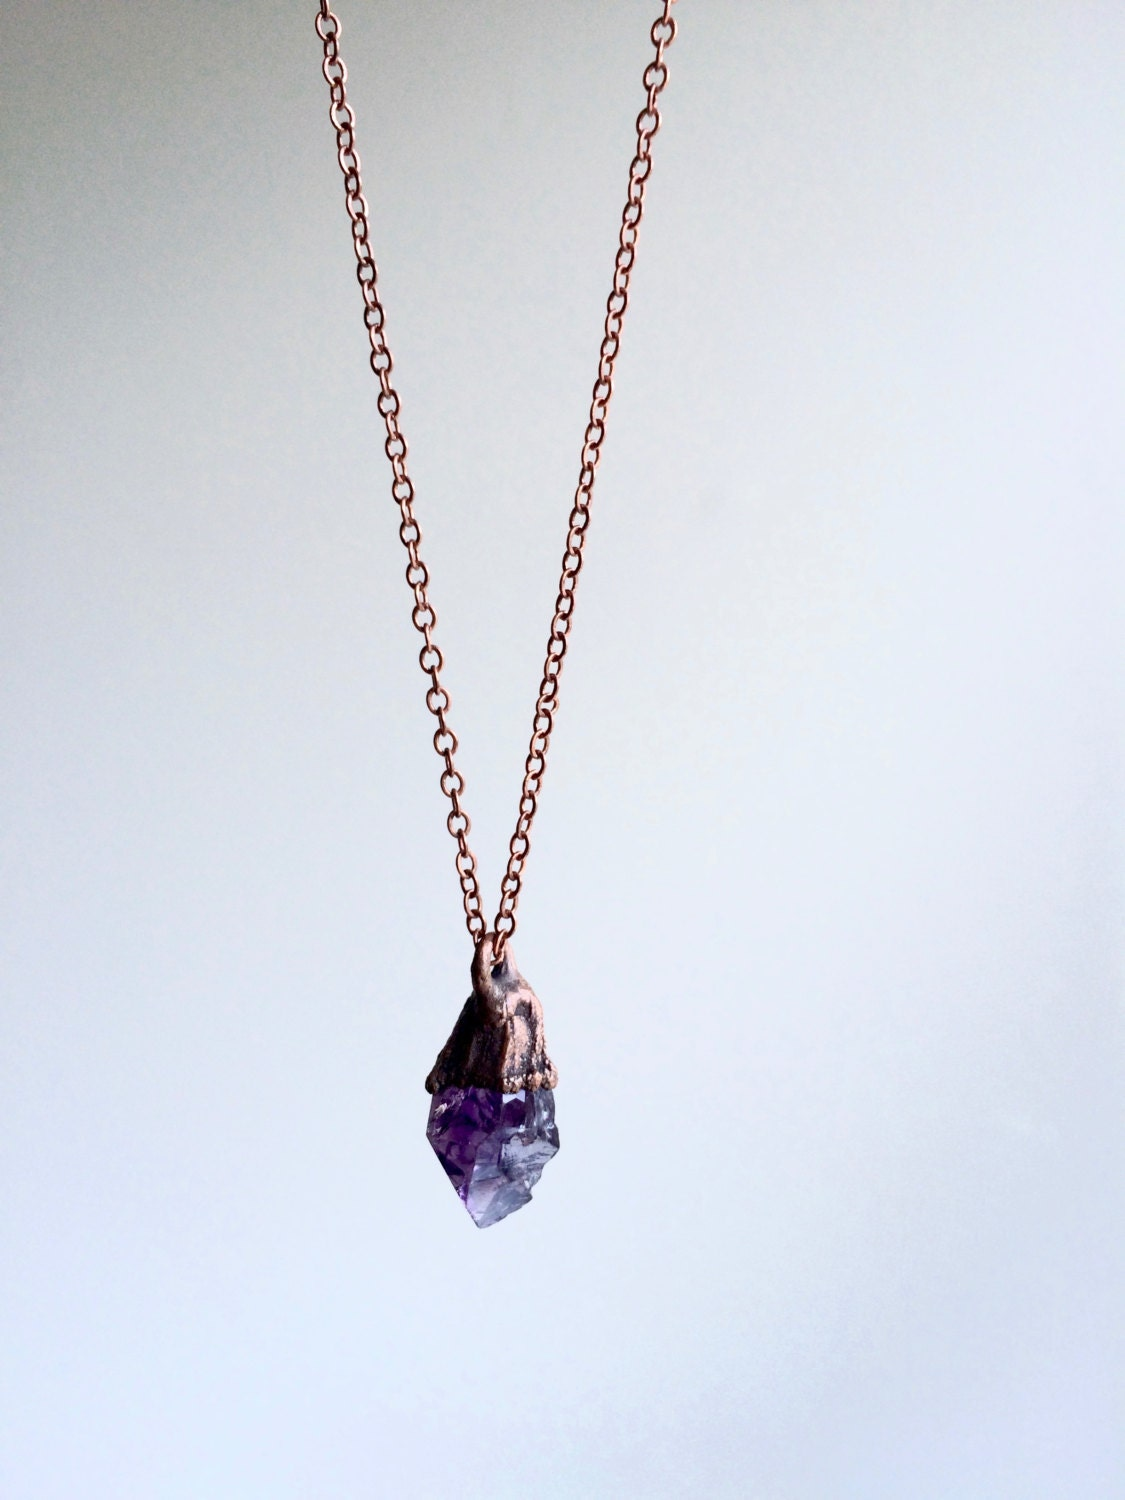 amethyst crystal necklace - photo #10